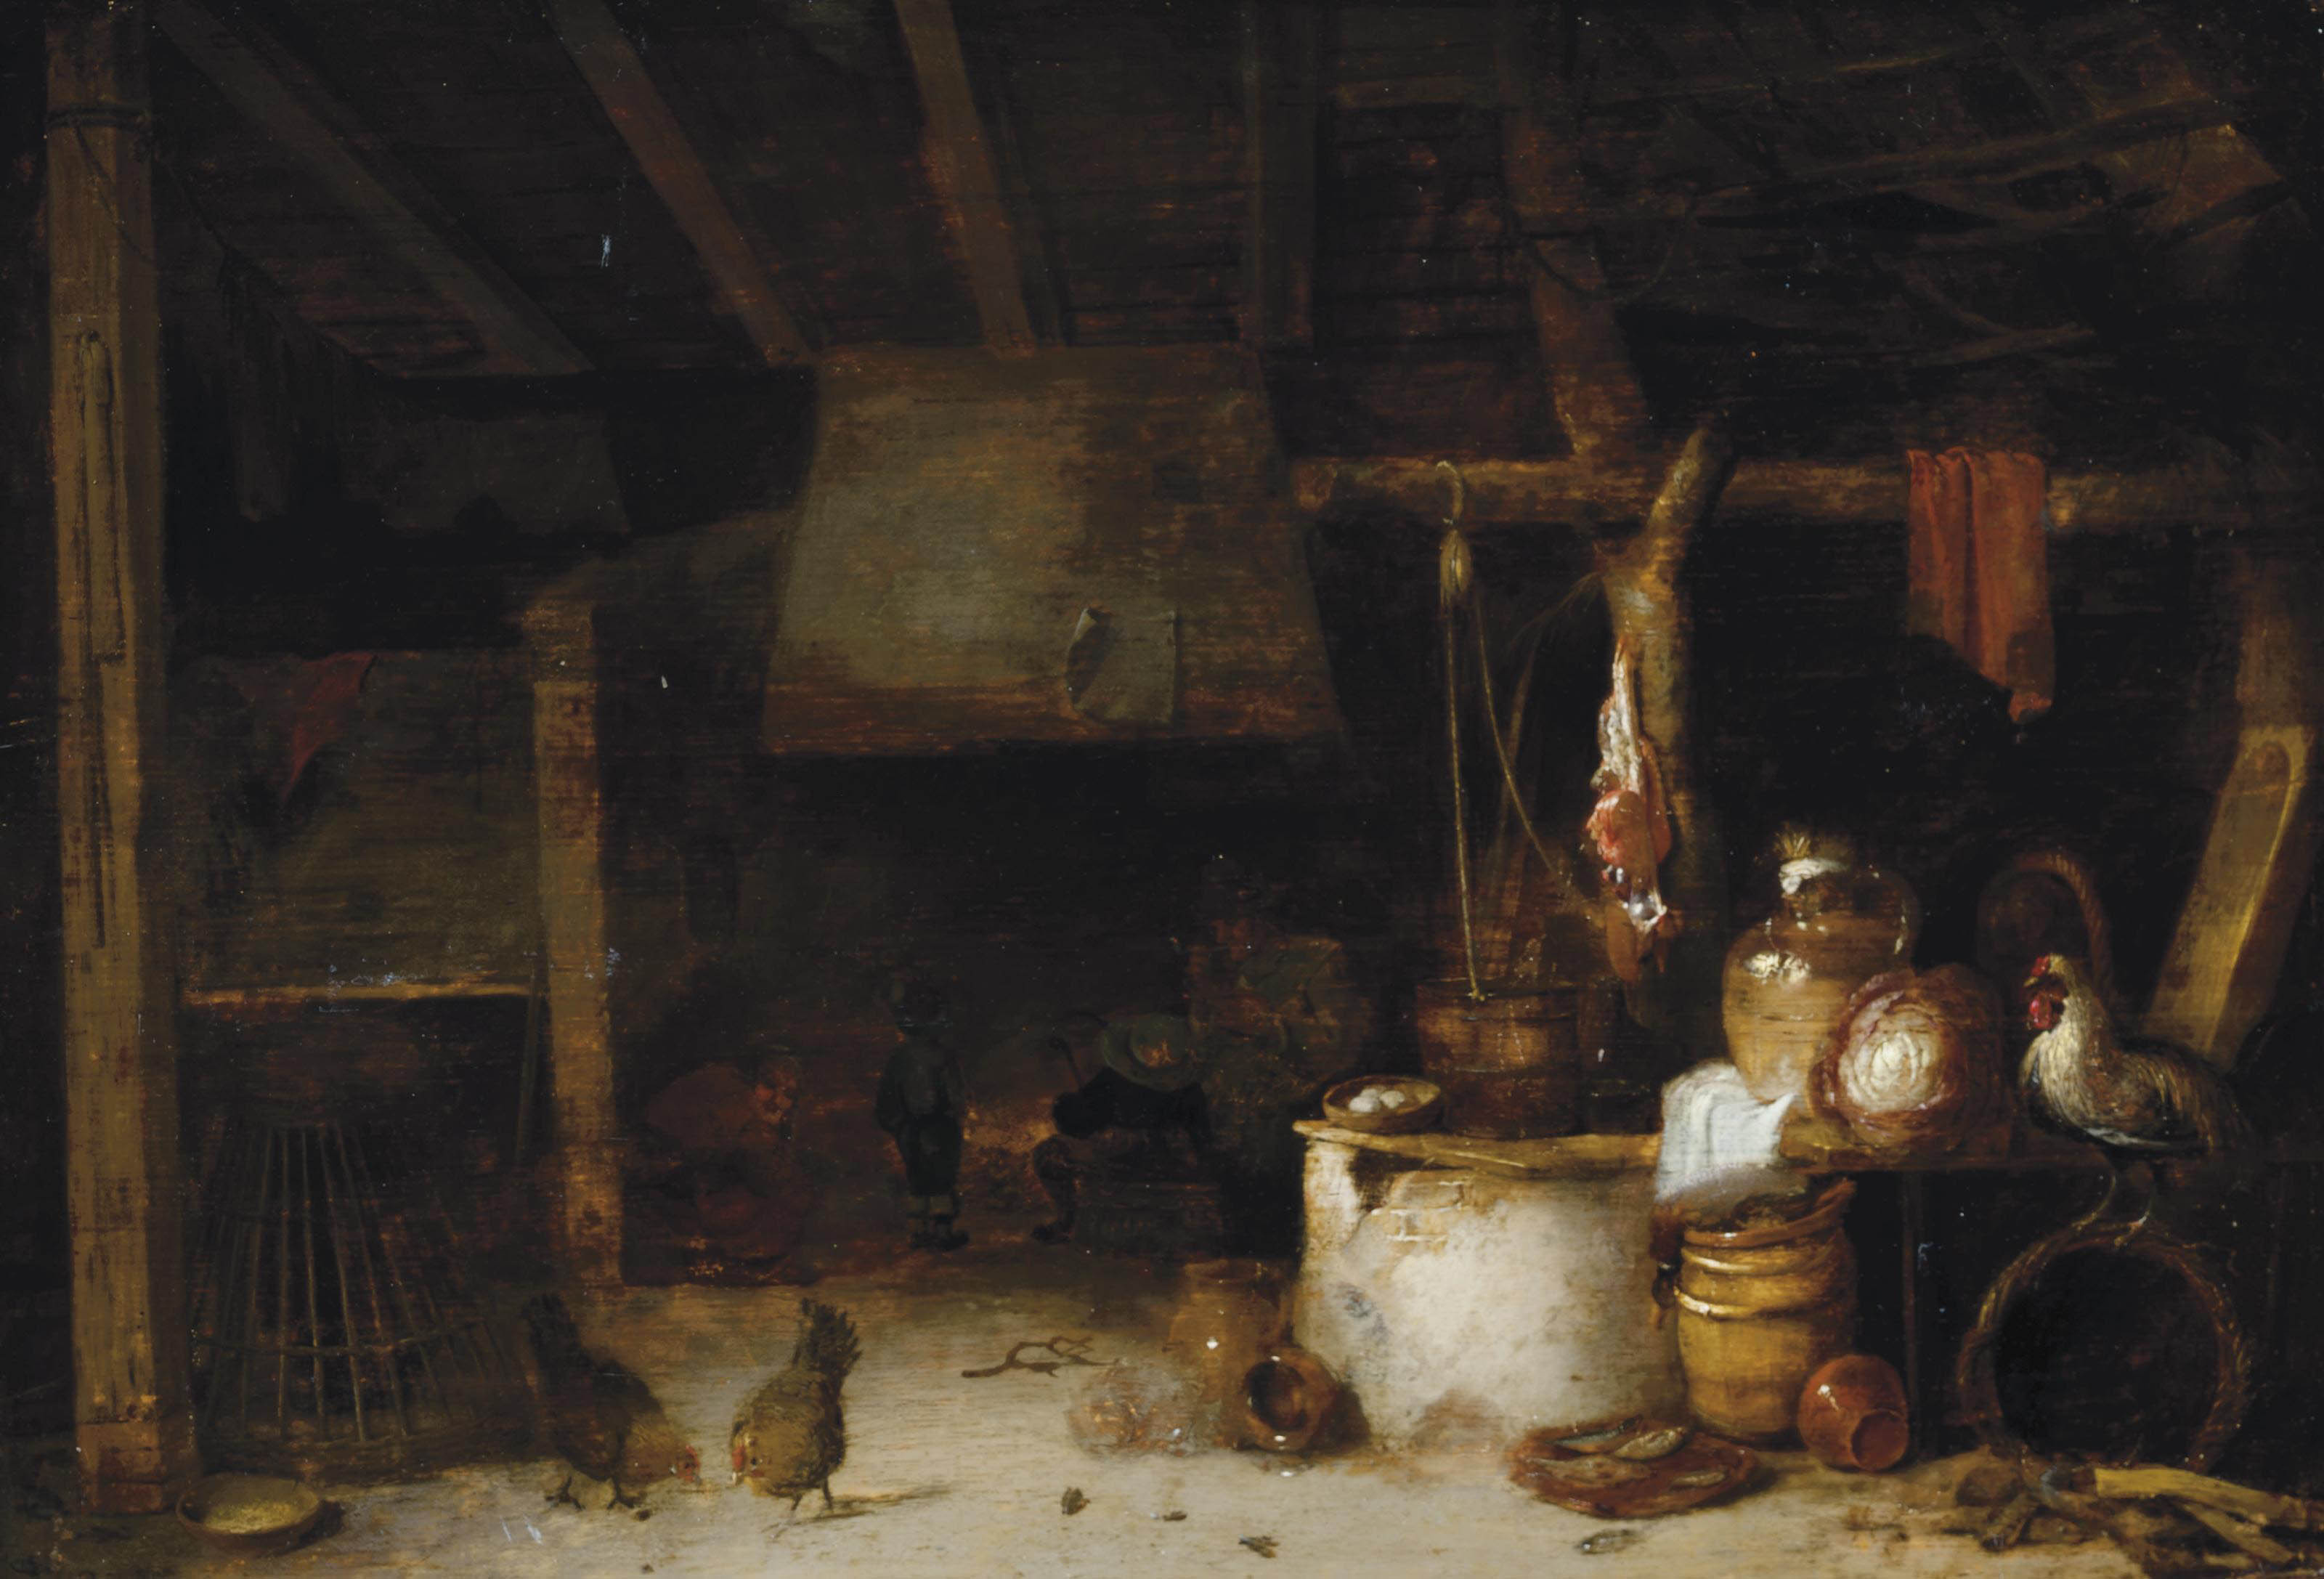 Figures by a fire, in an interior